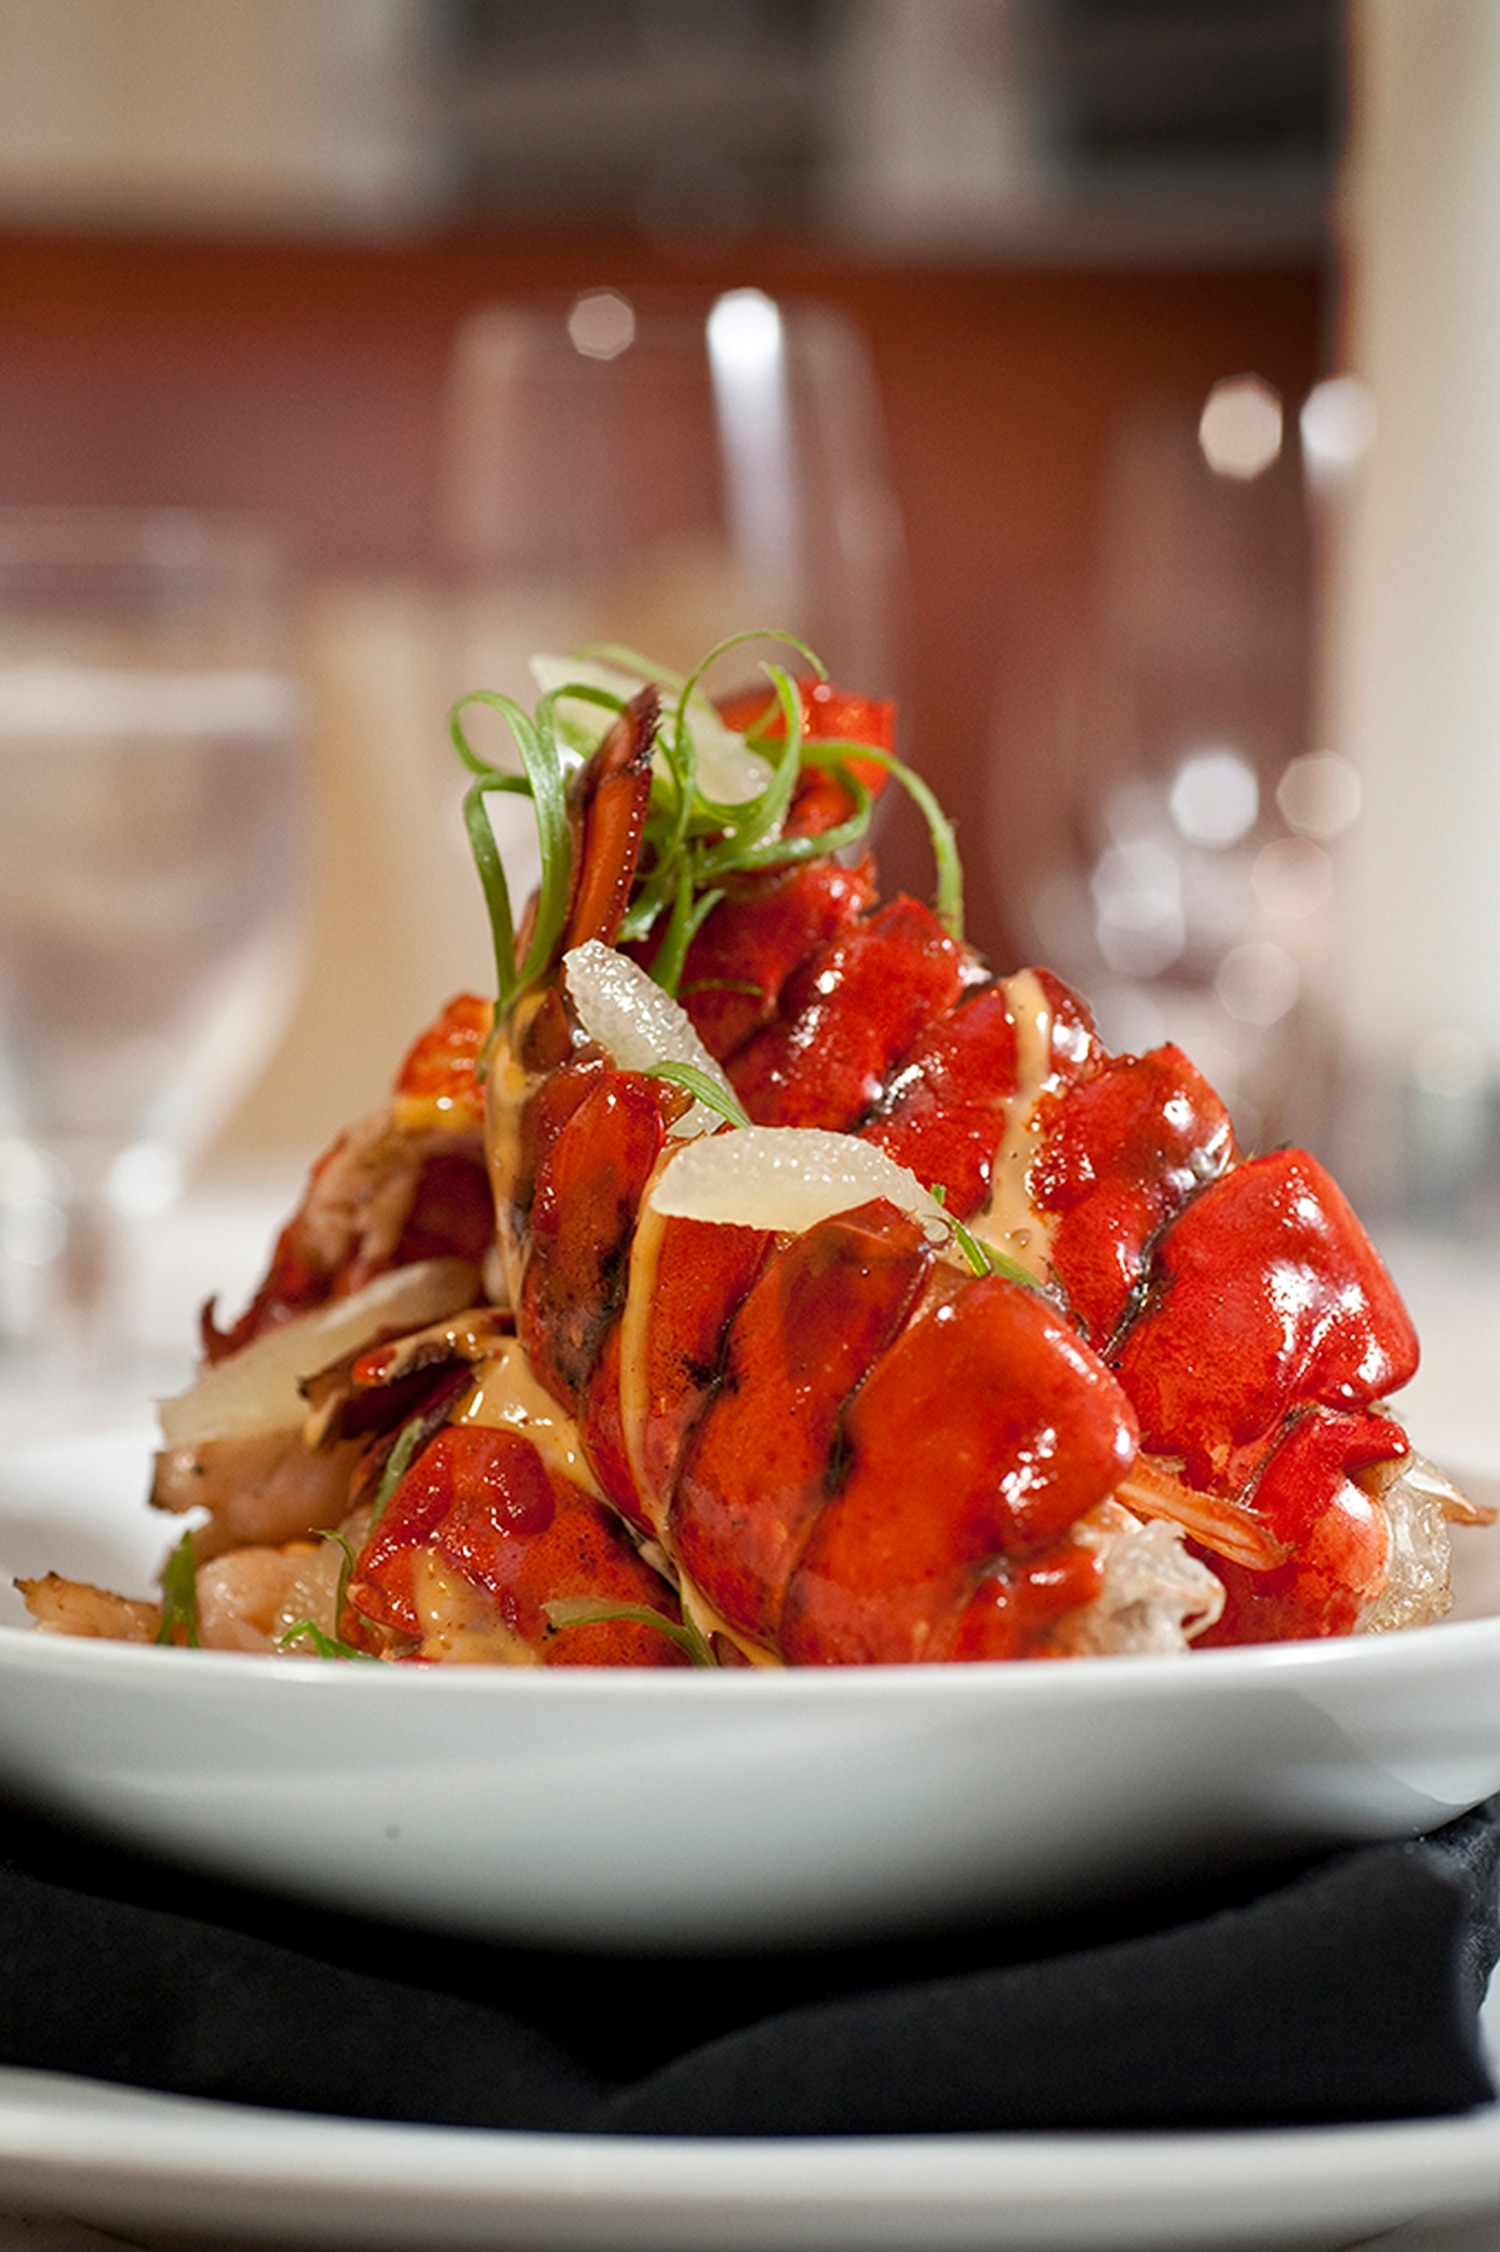 Mesquite-grilled Maine lobster tails with angel hair pasta